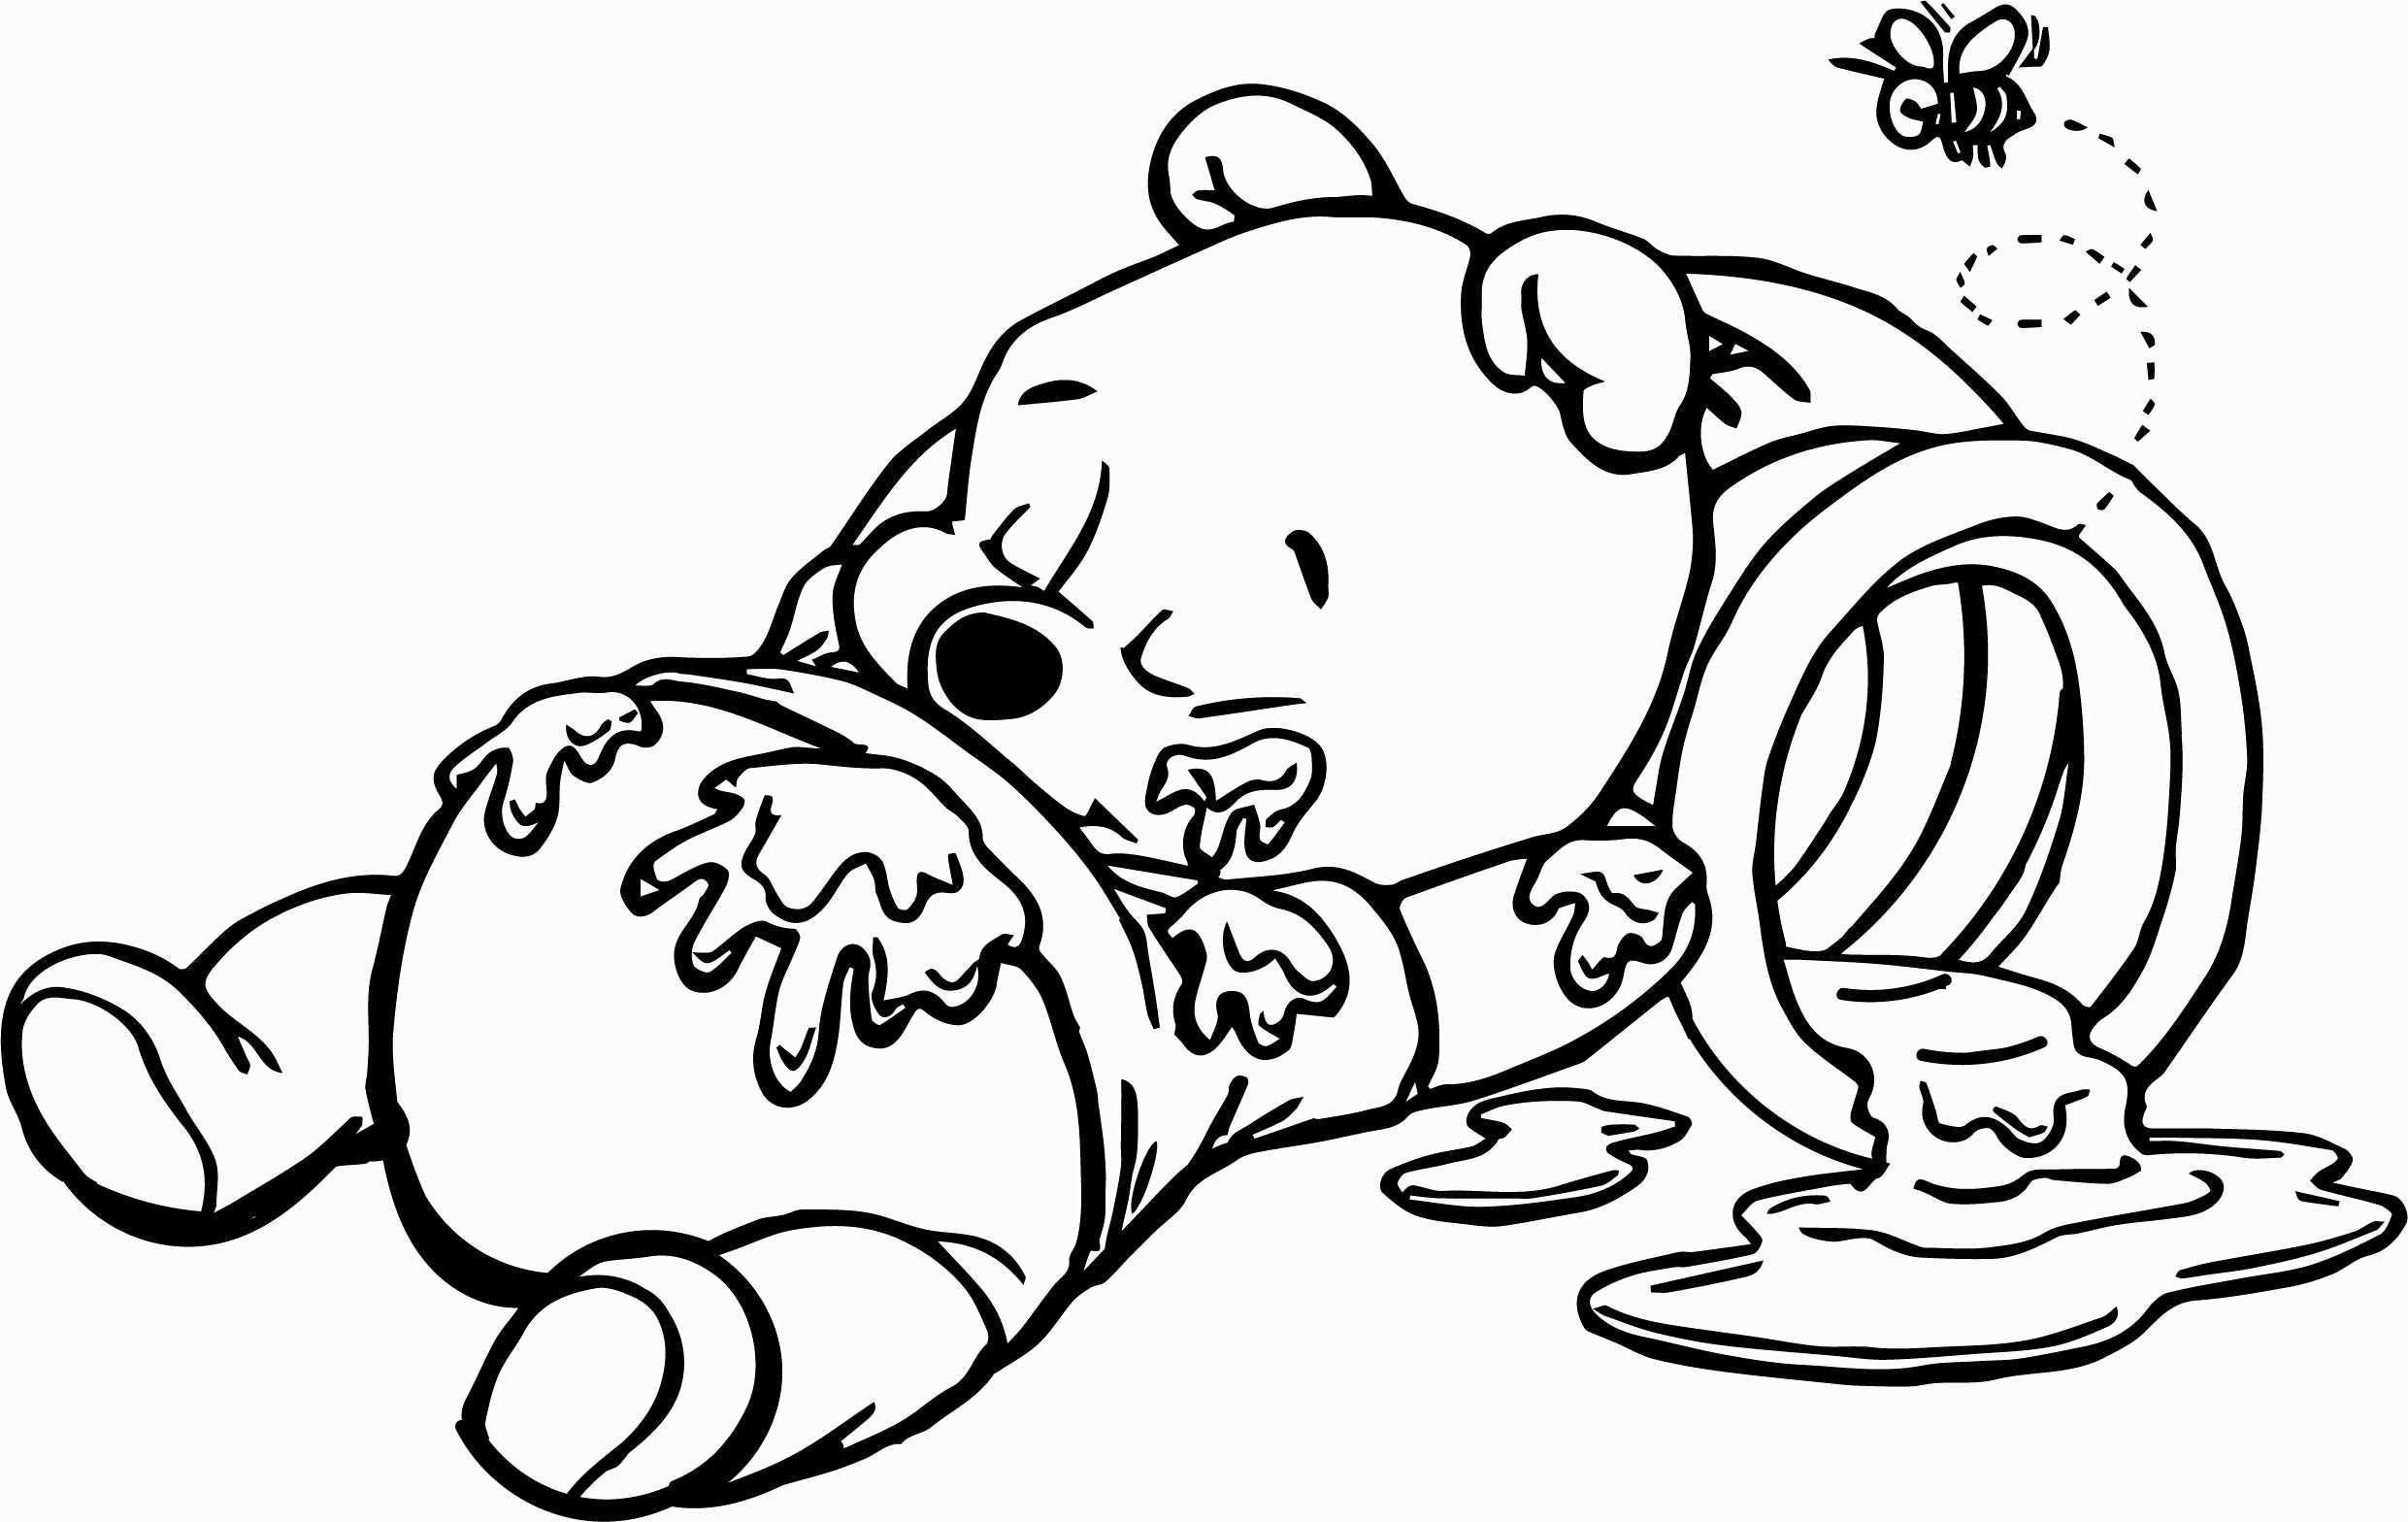 Winnie The Pooh Coloring Pages Fresh Pooh Coloring Pages